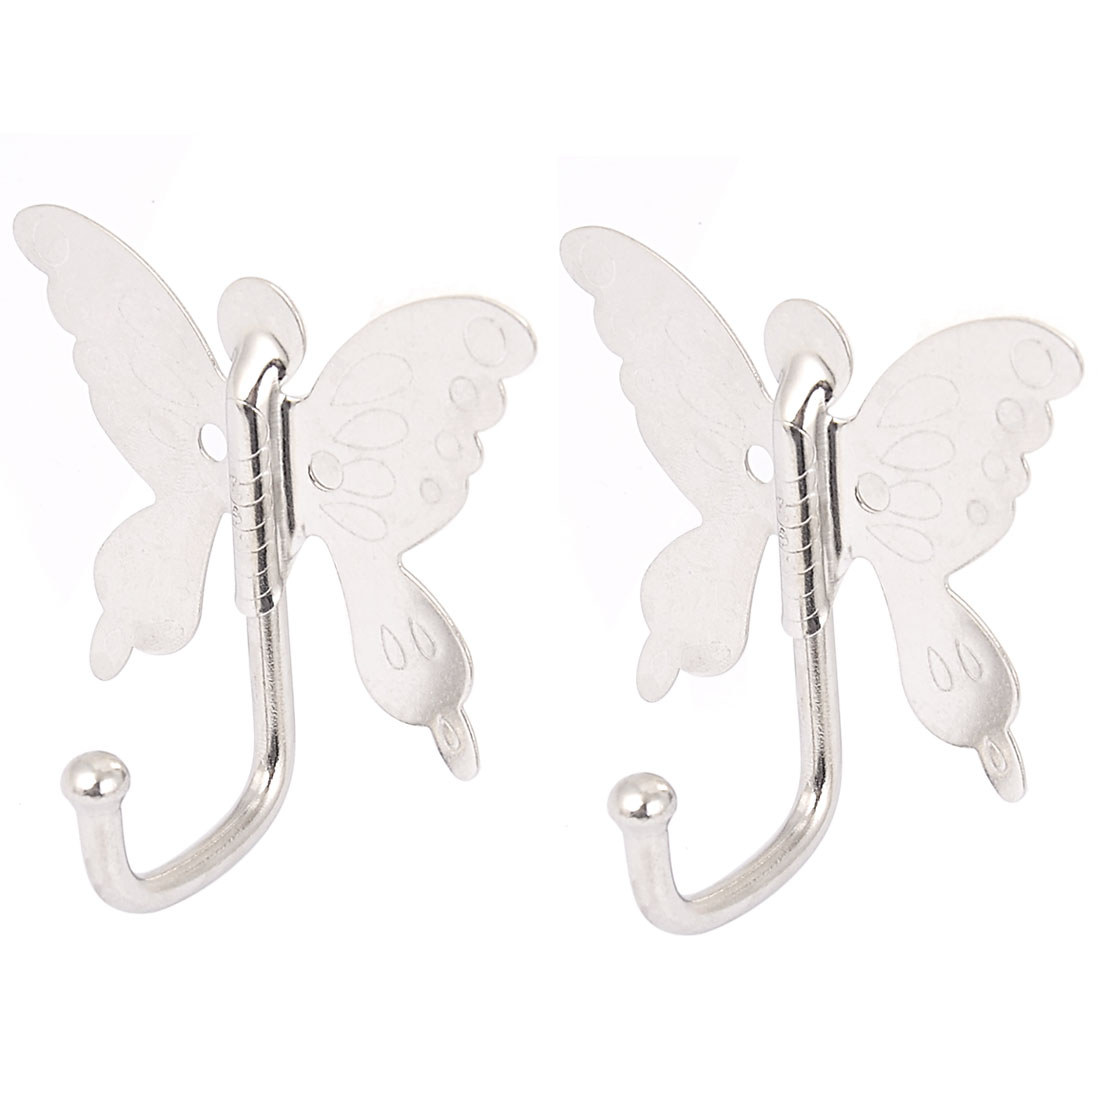 Bedroom Bathroom Butterfly Style Wall Mounted Cloth Towel Hook Hanger 2pcs - image 2 of 4